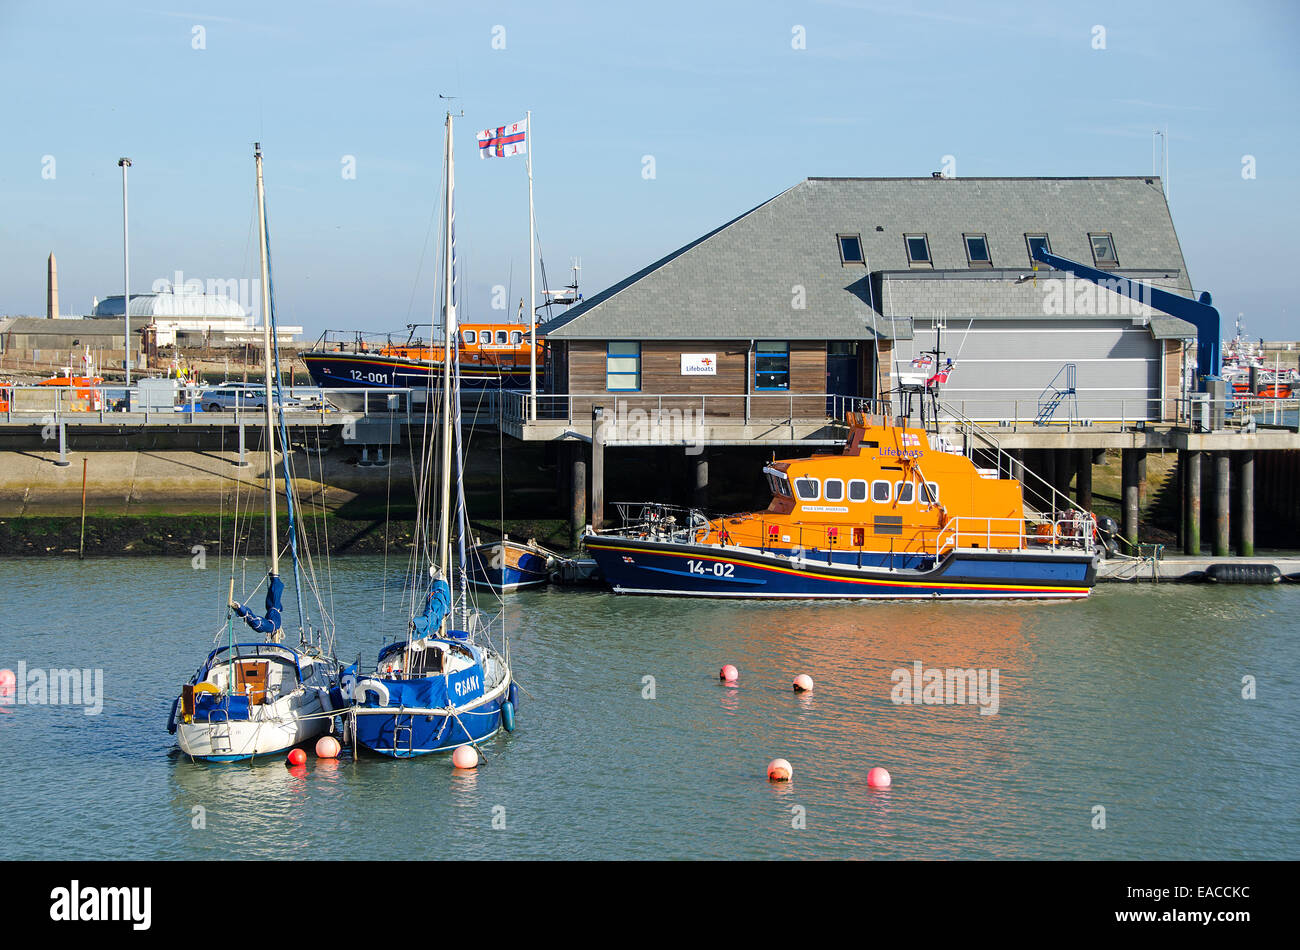 The Ramsgate Lifeboat, Esme Anderson at dock in Ramsgate harbour. - Stock Image